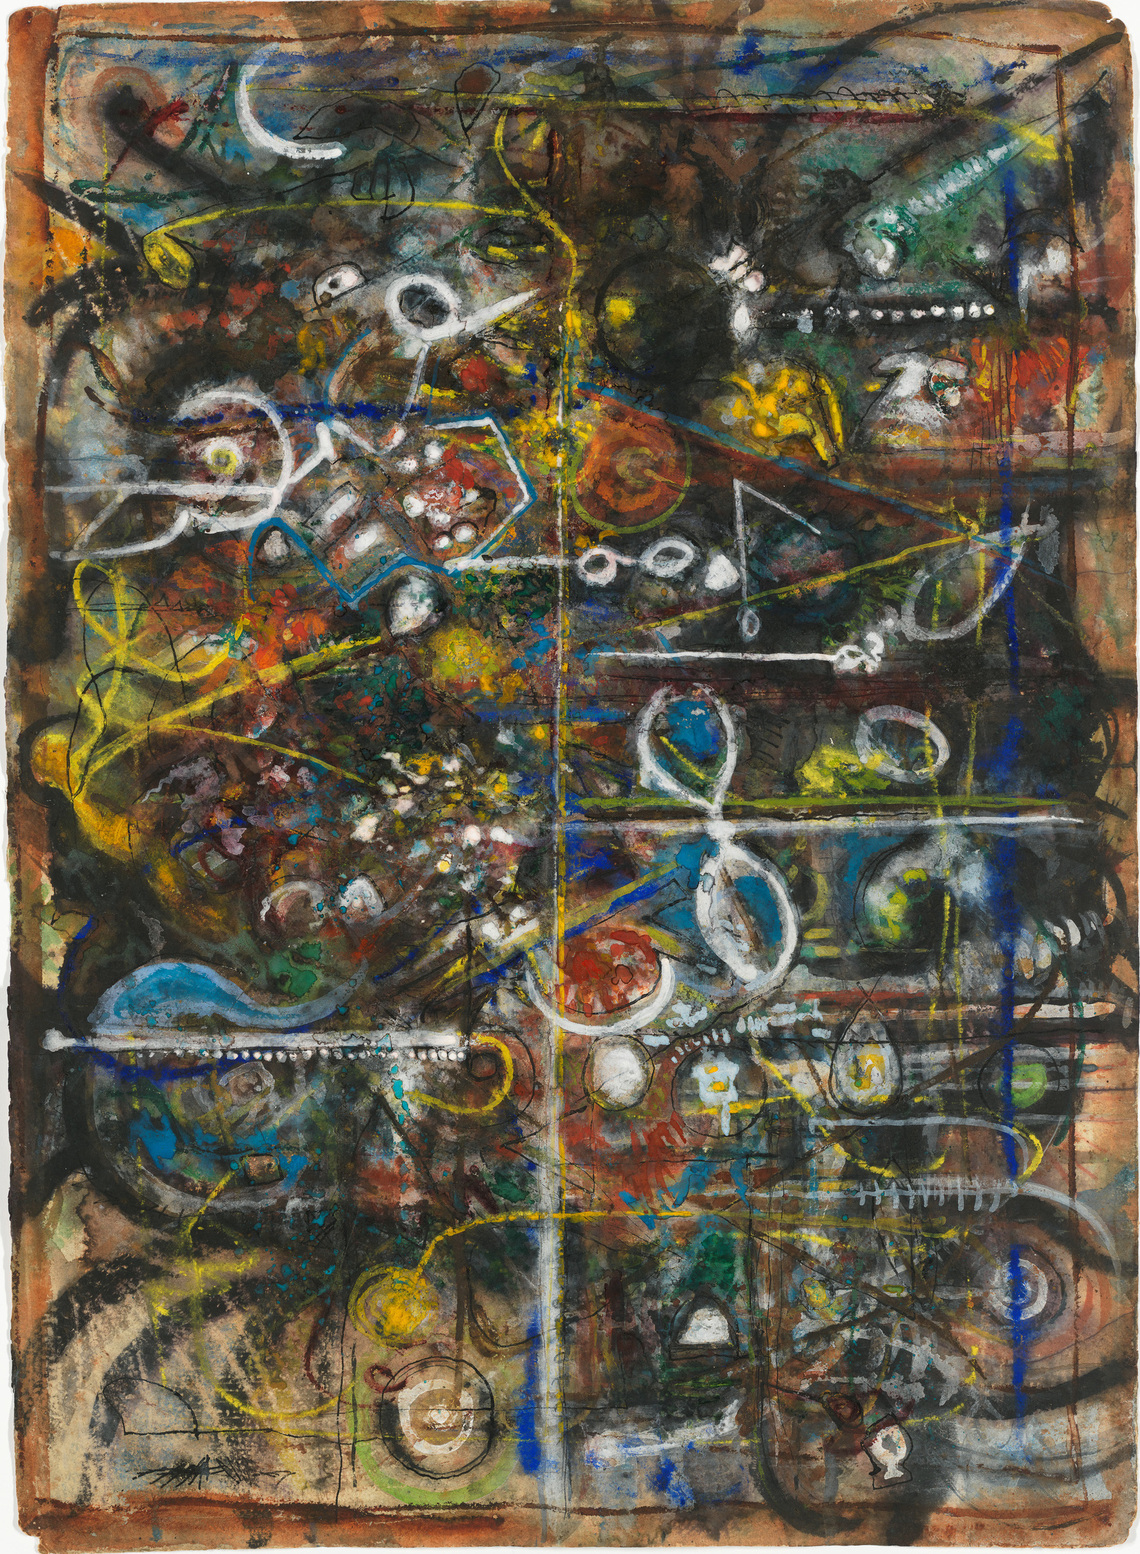 Richard Pousette-Dart (1916–1992), Untitled , 1940. Transparent and opaque watercolor, pen and ink, and graphite pencil on paper, 31 × 23 1/2 in. (78.7 × 59.7 cm) Whitney Museum of American Art, New York; purchase, with funds from the Drawing Committee 2001.21 © artist or artist's estate.